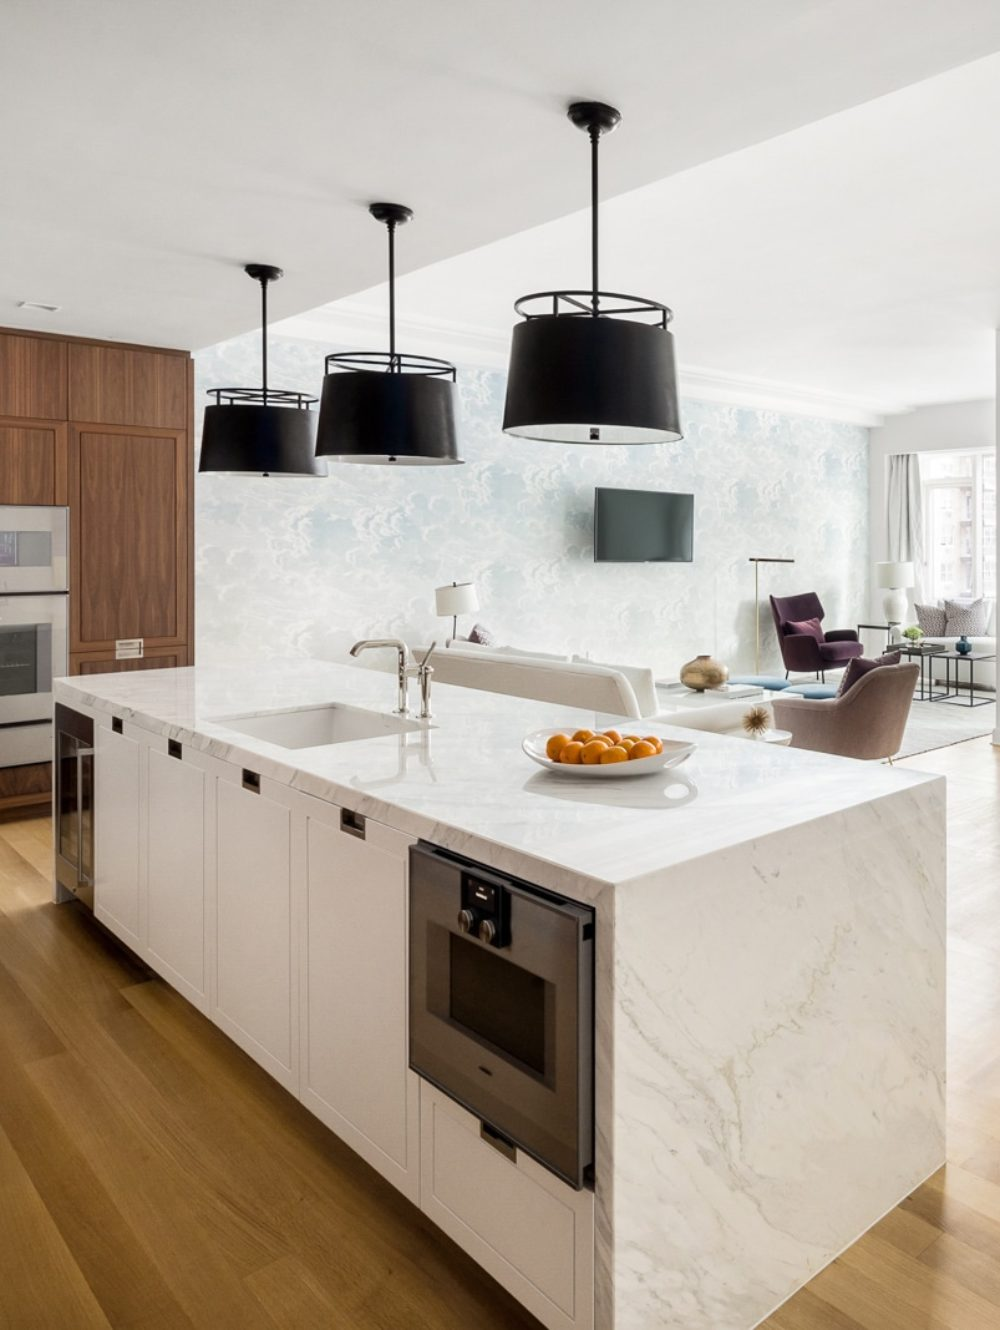 Kitchen and dinner room at The Hayworth condos in NYC. Open concept living with kitchen, dining room and living room.